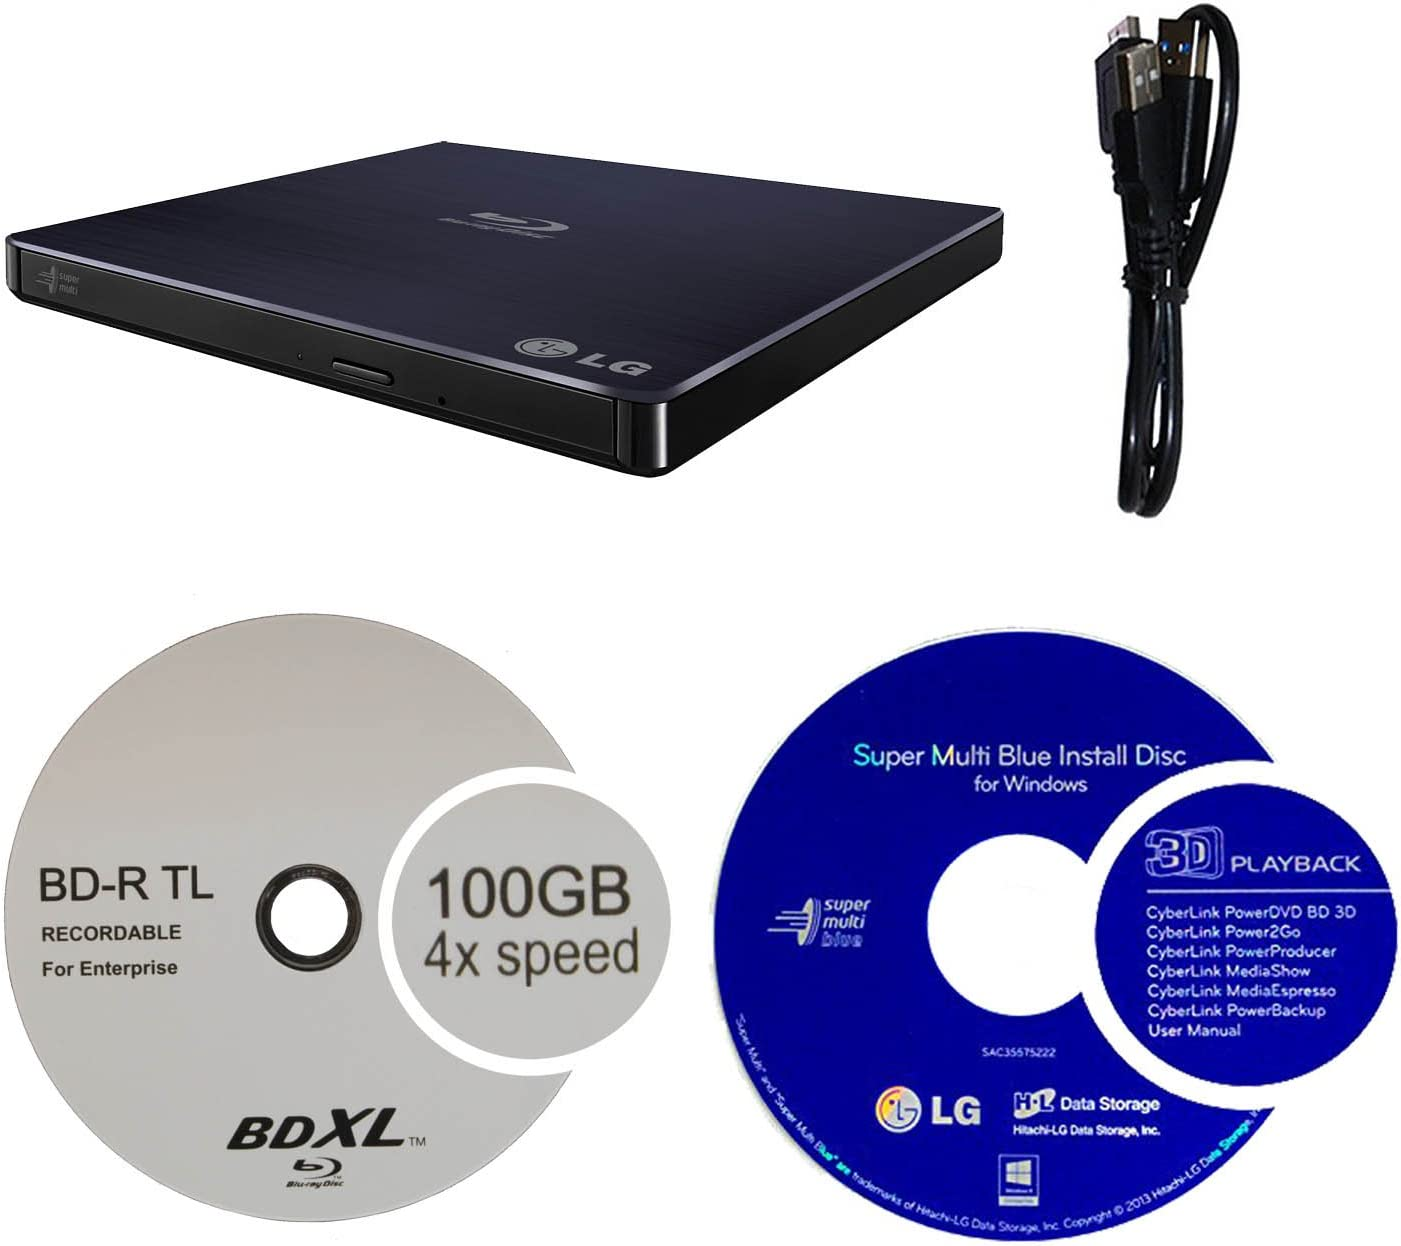 LG 6X WP50NB40 Ultra Slim Portable Blu-ray Burner Bundle with 100GB BDXL Disc and Cyberlink Burning Software